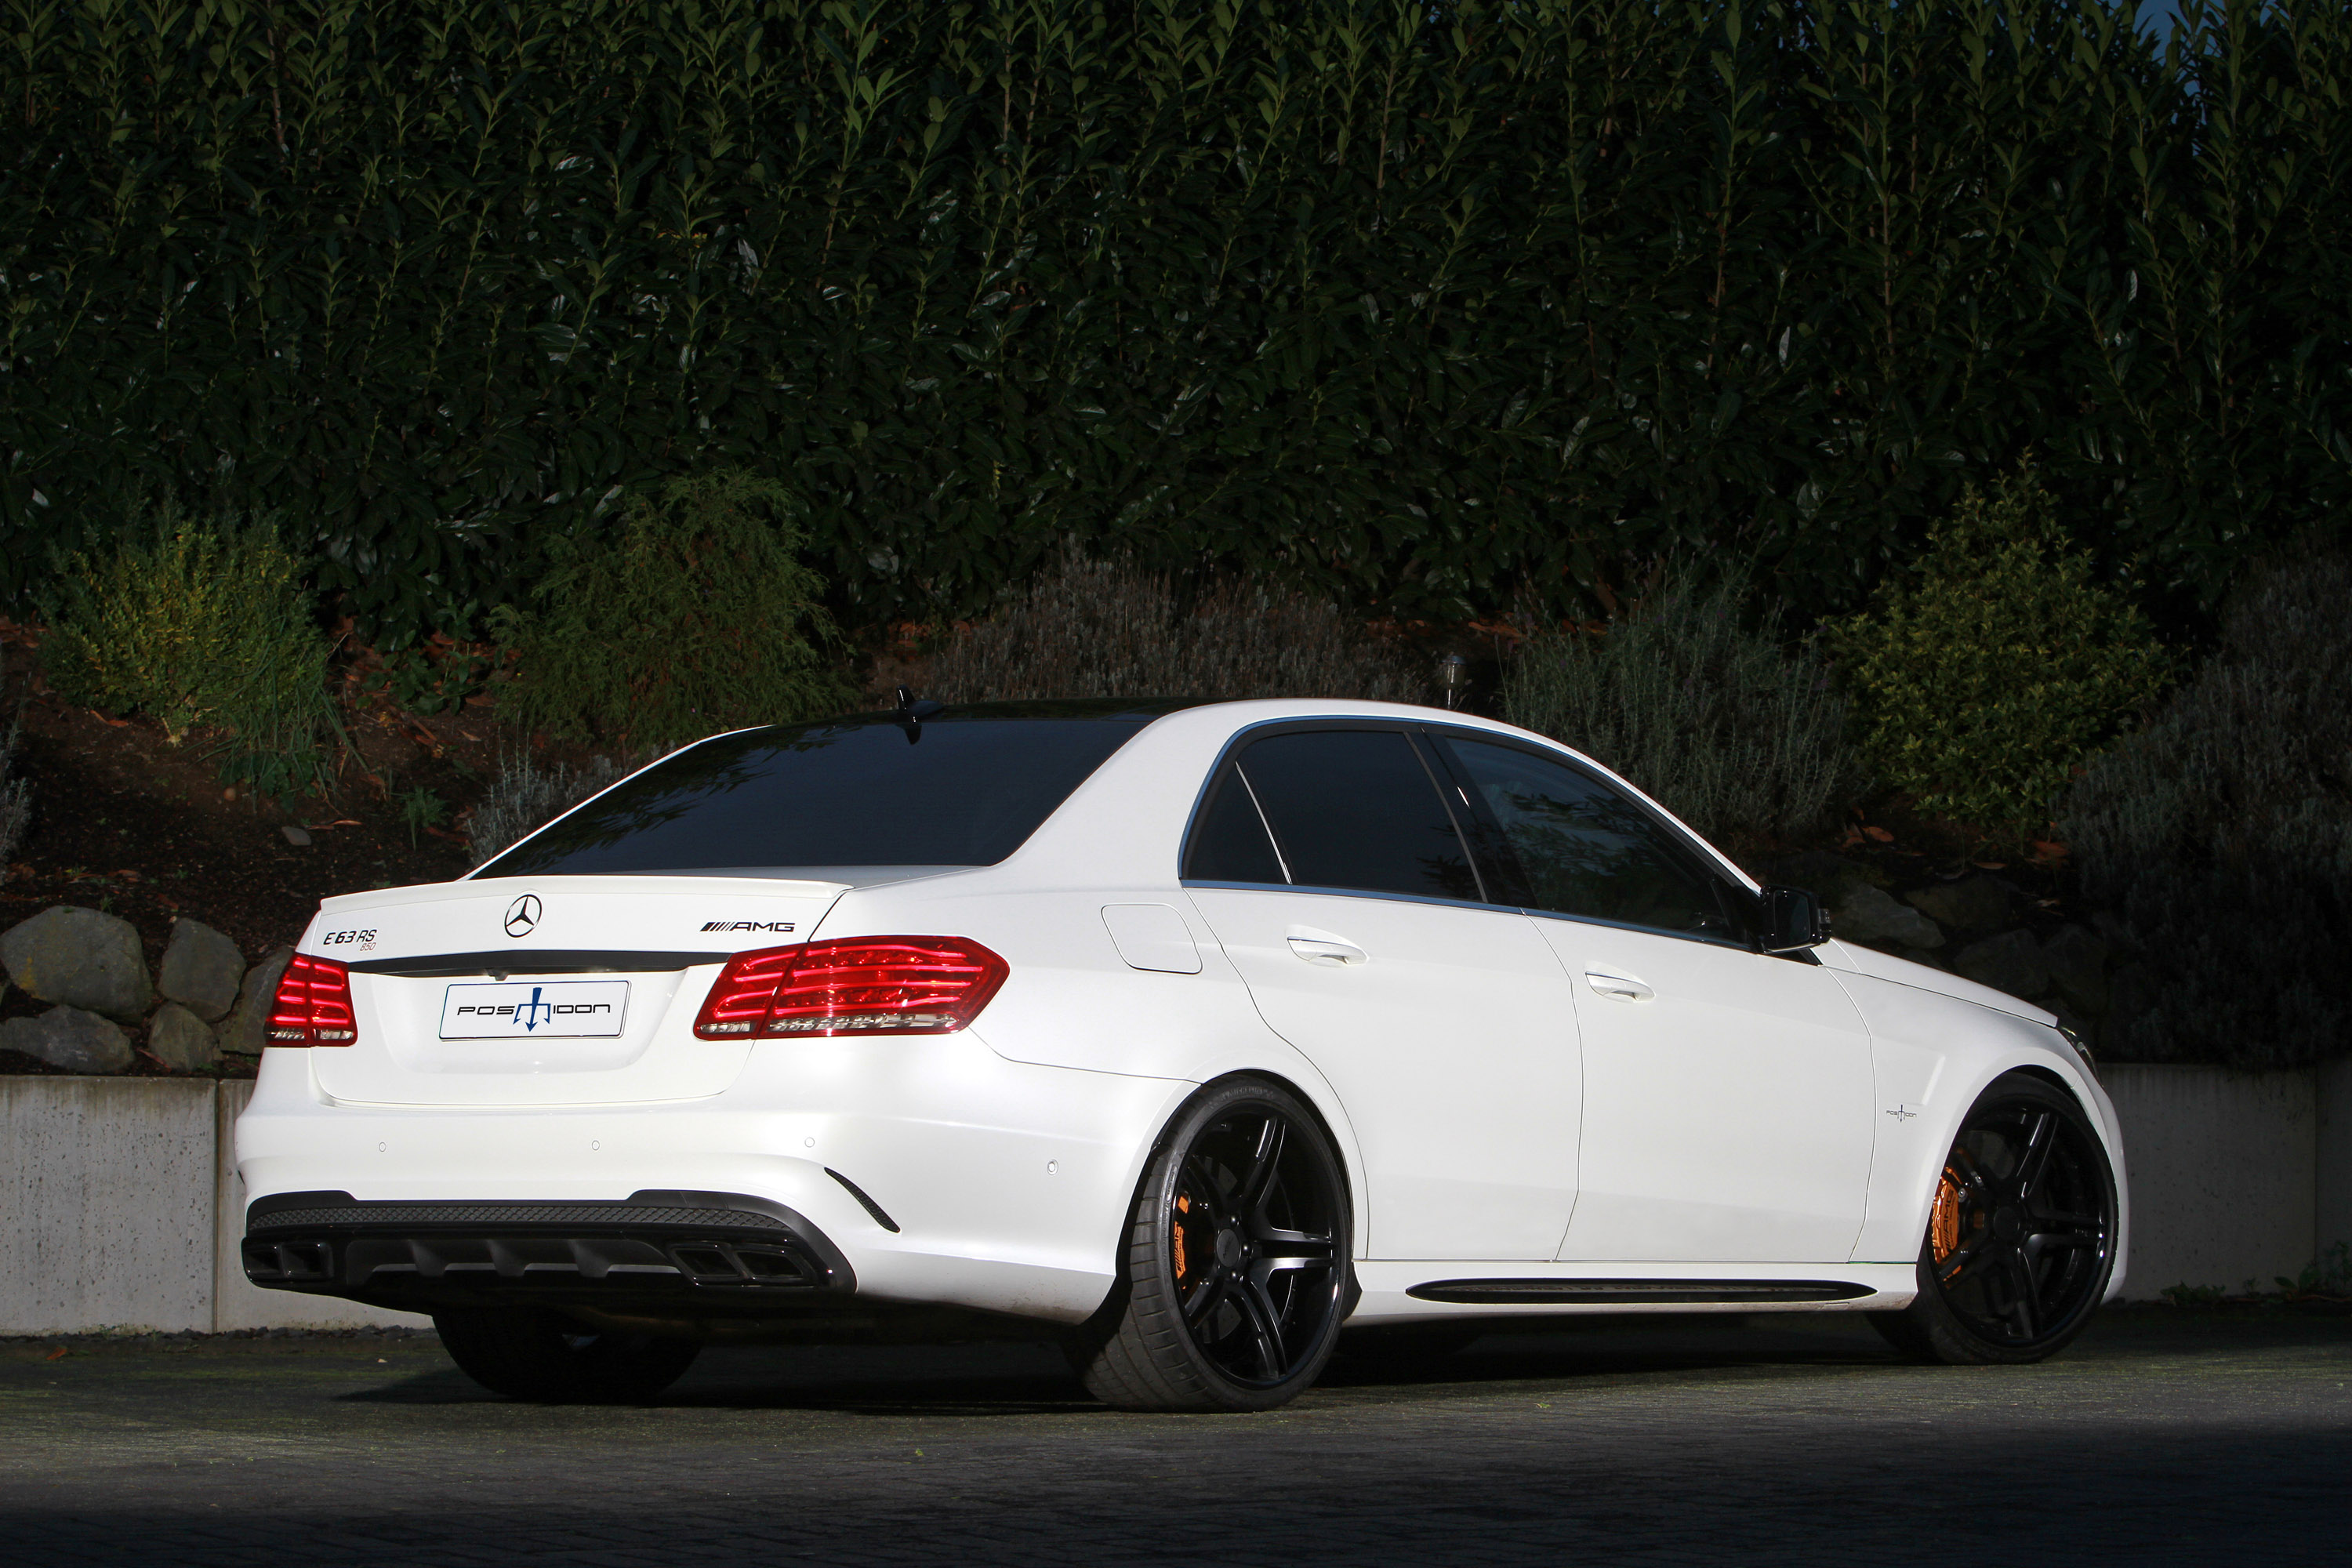 Posaidon Mercedes Benz E63 Amg Rs 850 Picture 114025